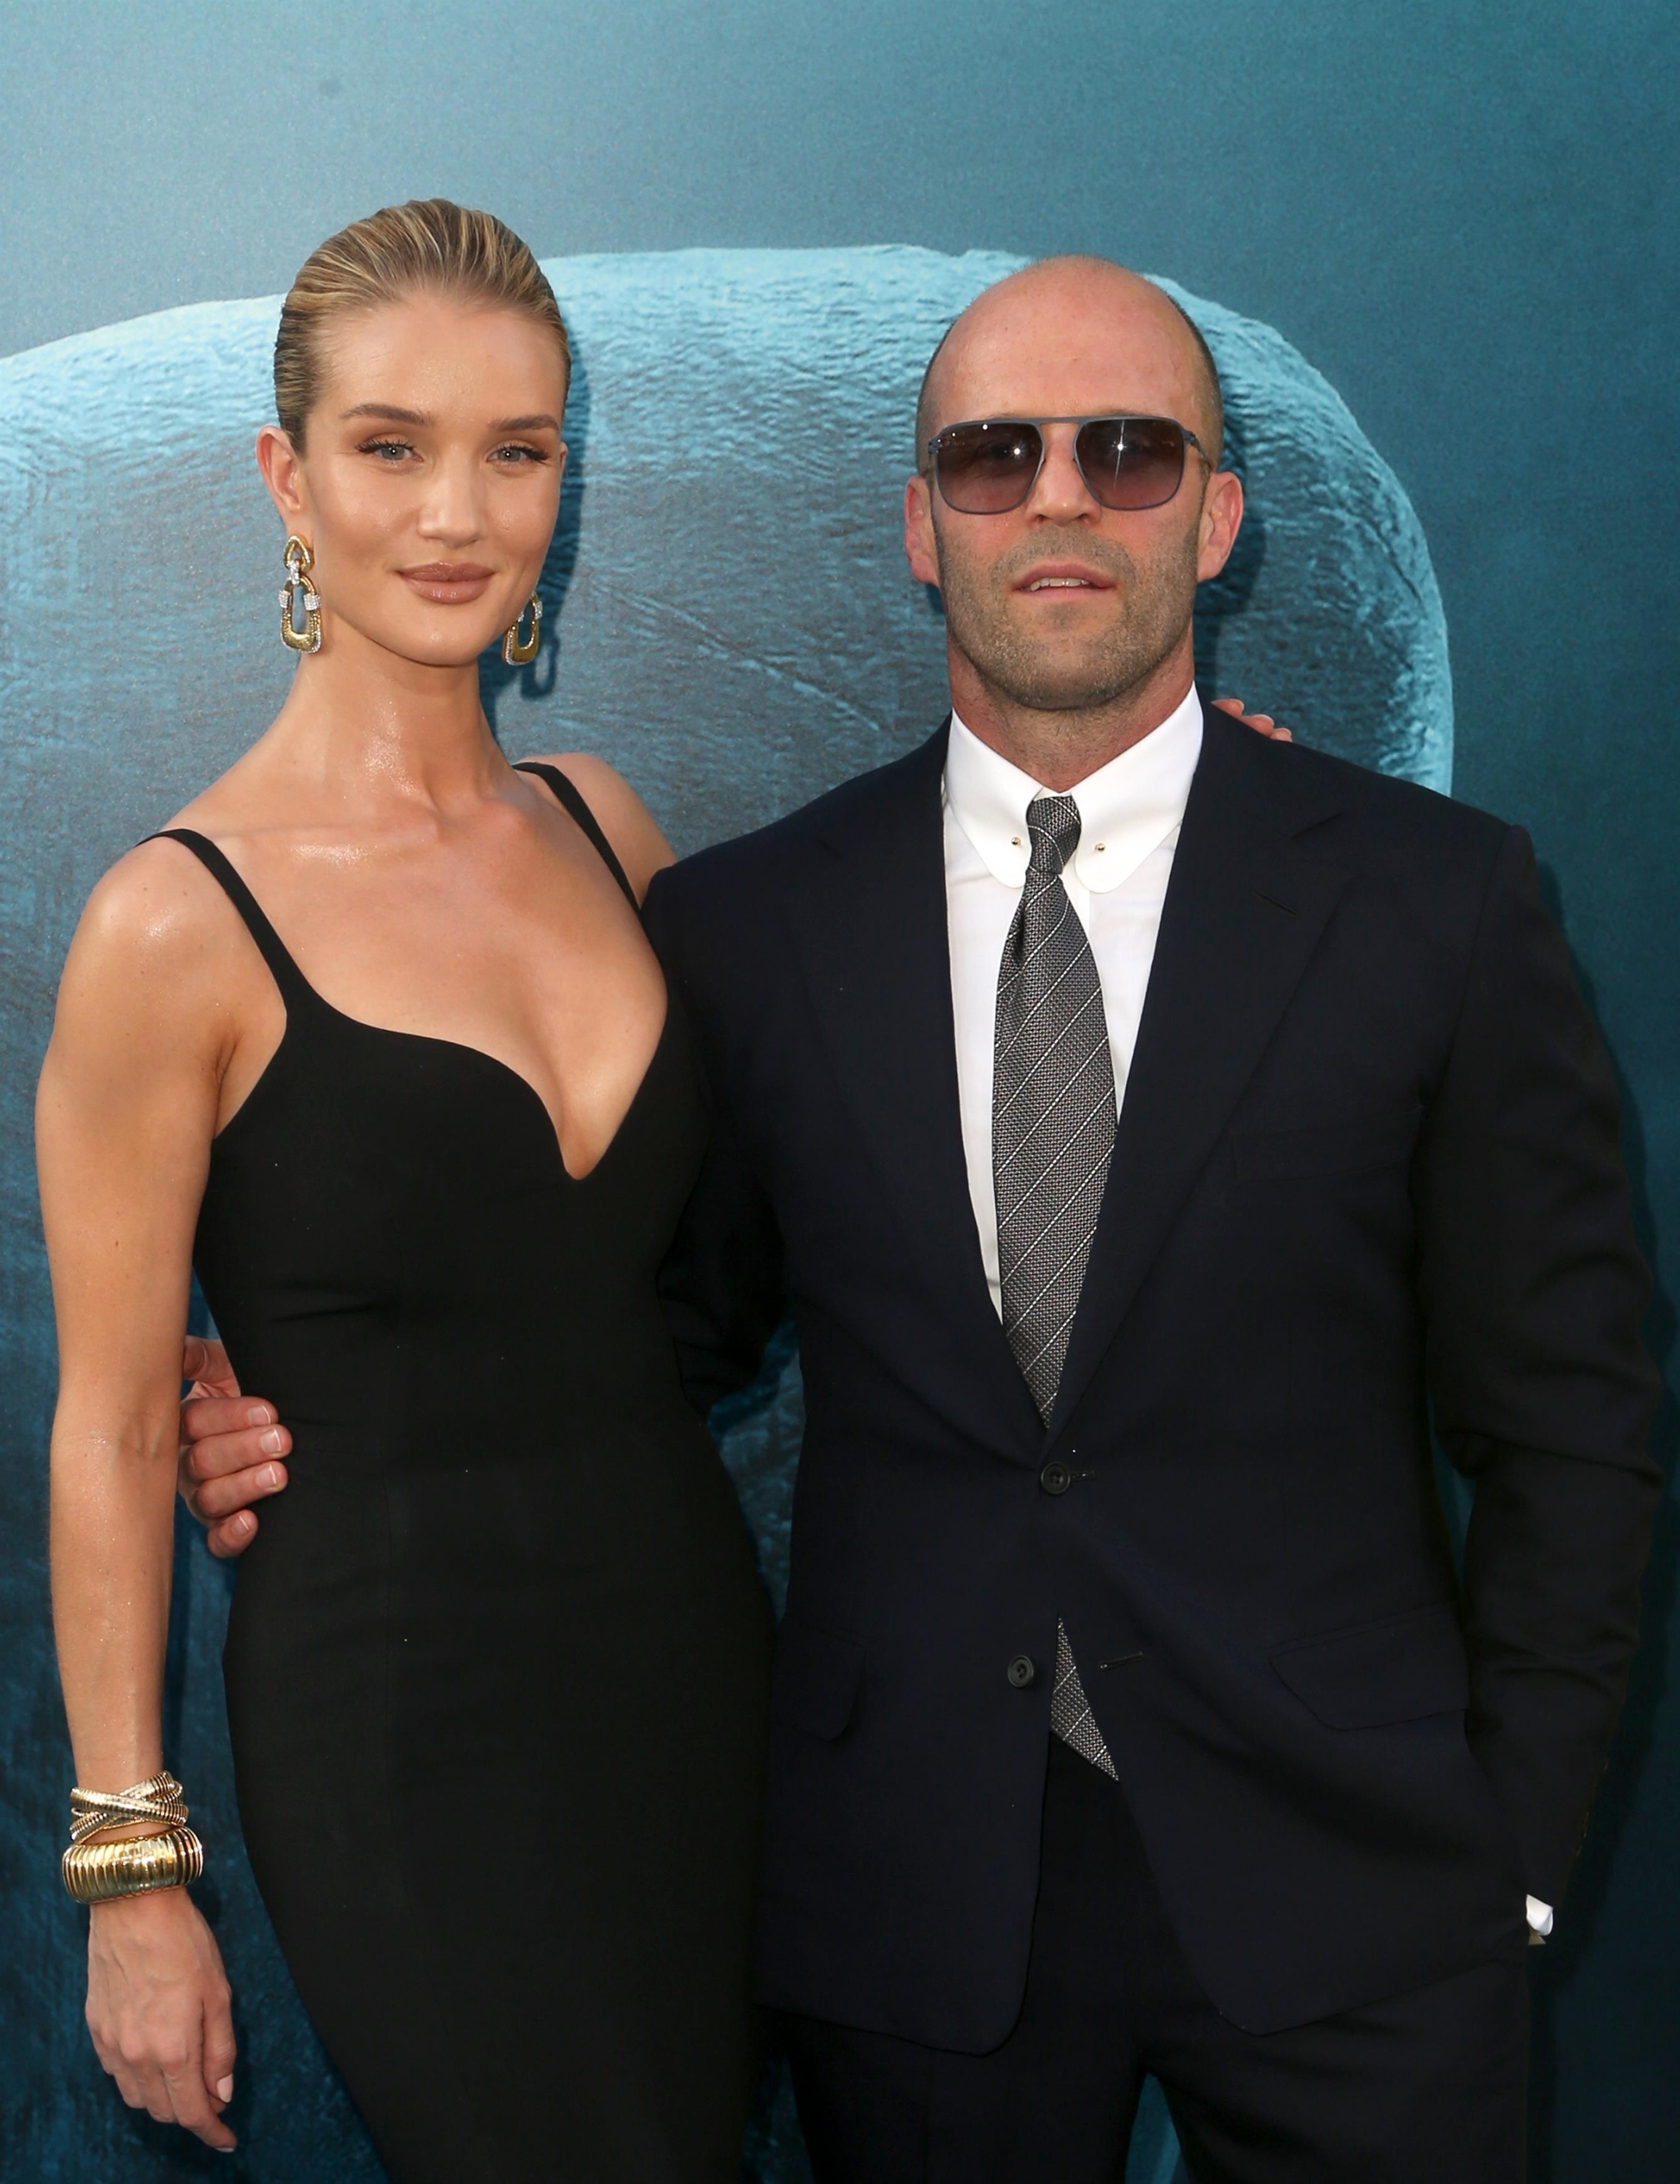 """Rosie Huntington Whiteley and Jason Statham attend the premiere of """"The Meg"""" at the TCL Chinese Theatre in Hollywood on Aug. 6, 2018."""